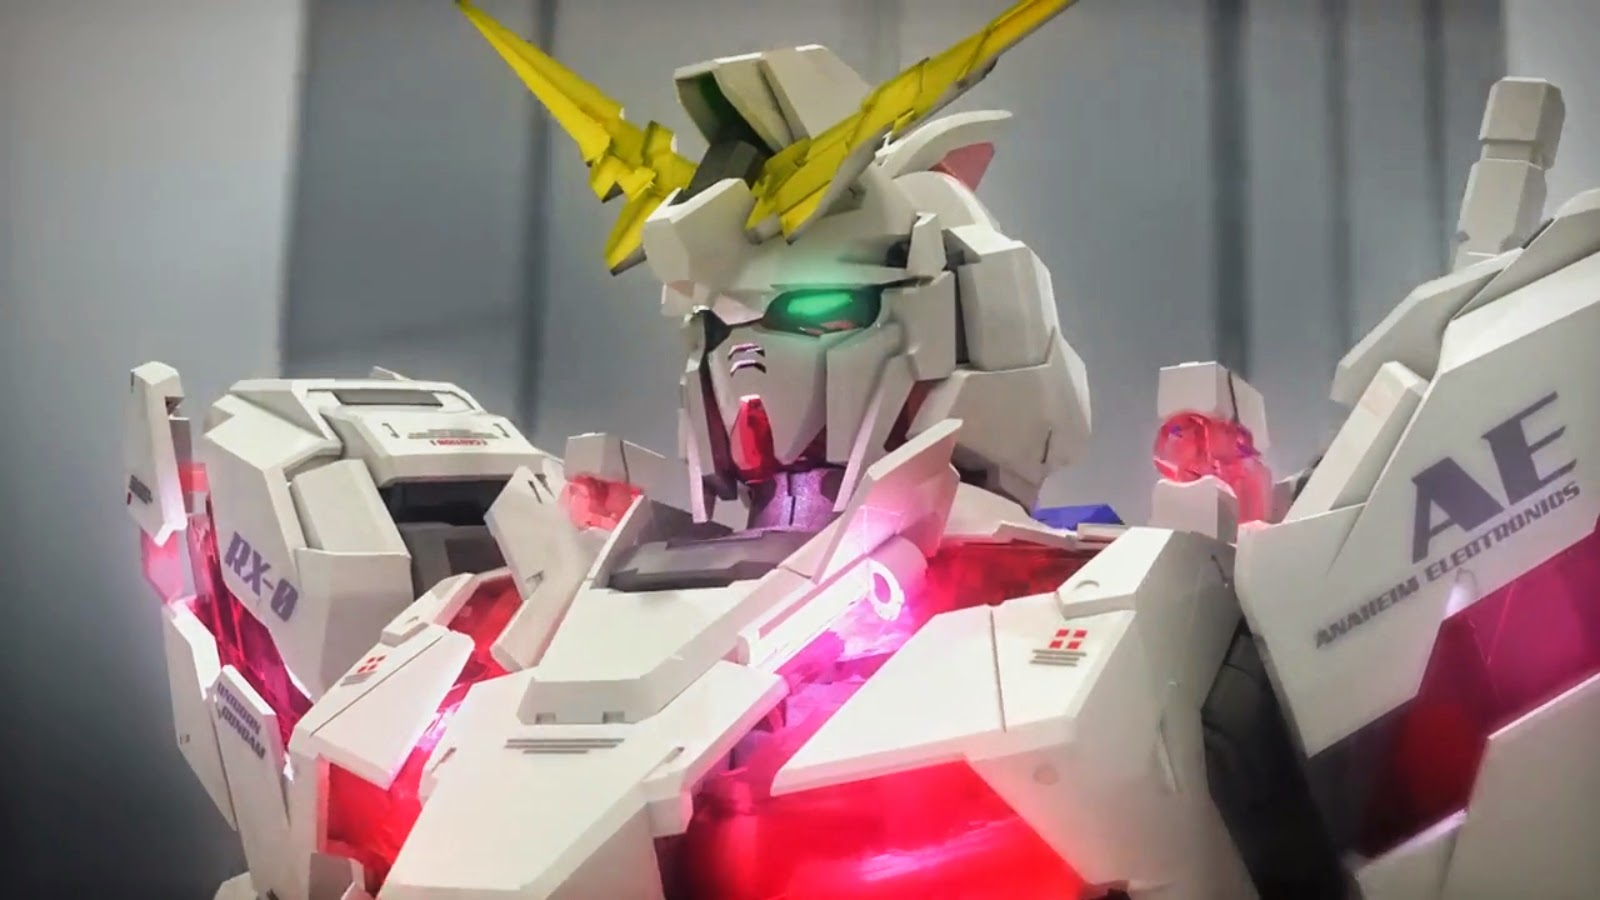 PG 1/60 RX-0 Unicorn Gundam - Release Info, Box Art and Official Images